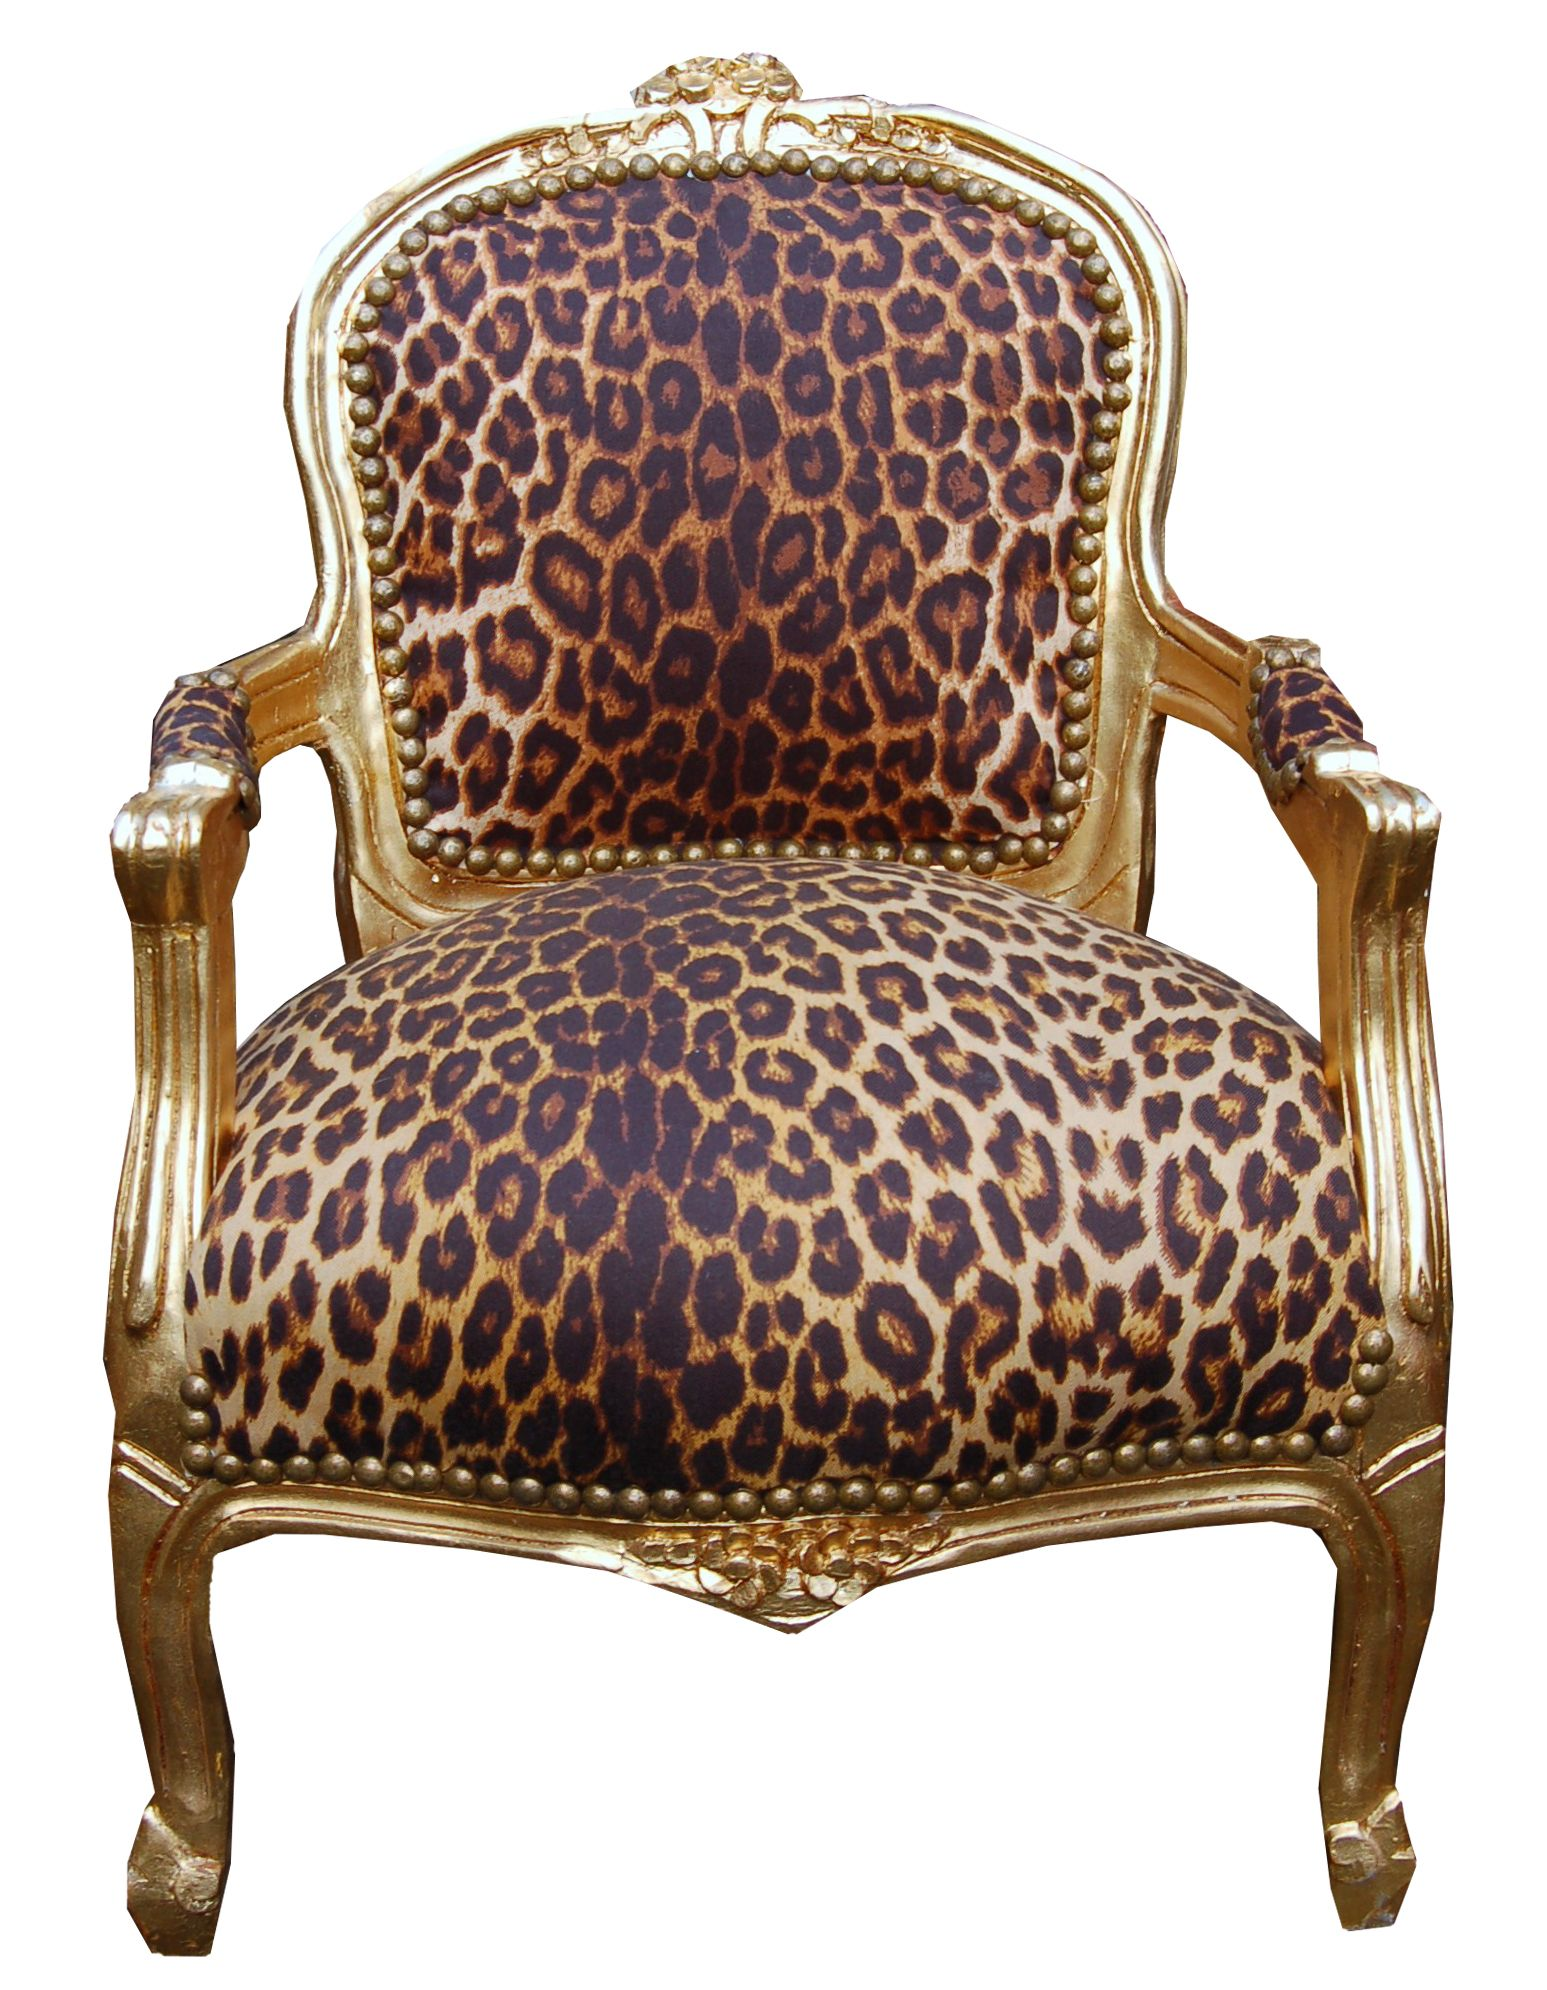 Cheetah Chair Leopard Print Chairs Home Decor